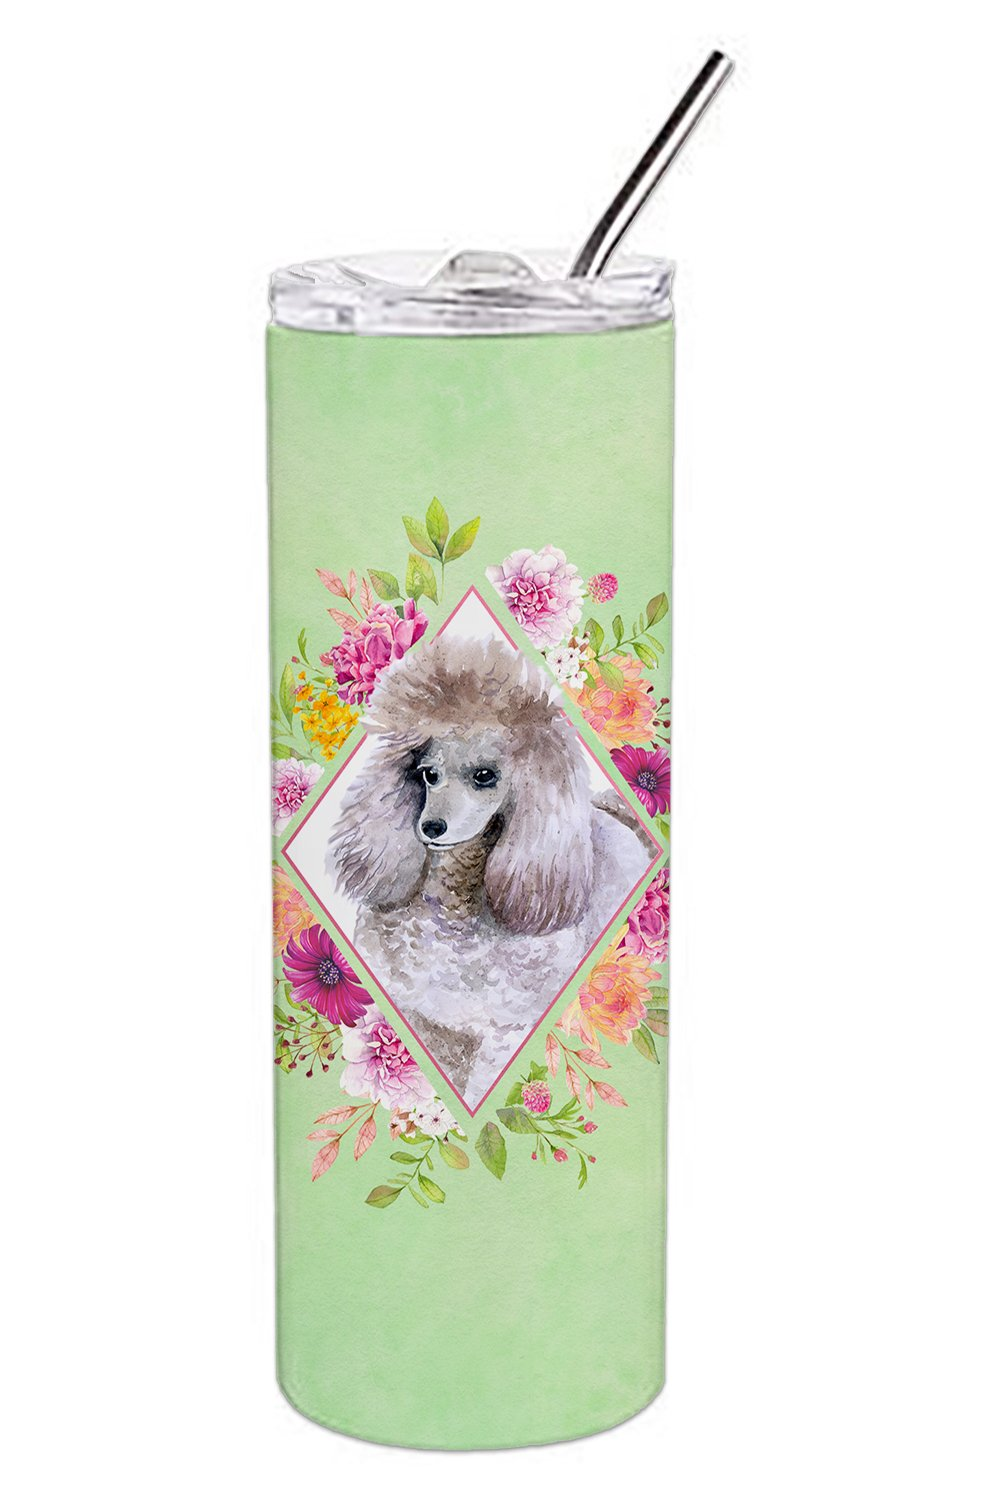 Standard Grey Poodle Green Flowers Double Walled Stainless Steel 20 oz Skinny Tumbler CK4333TBL20 by Caroline's Treasures